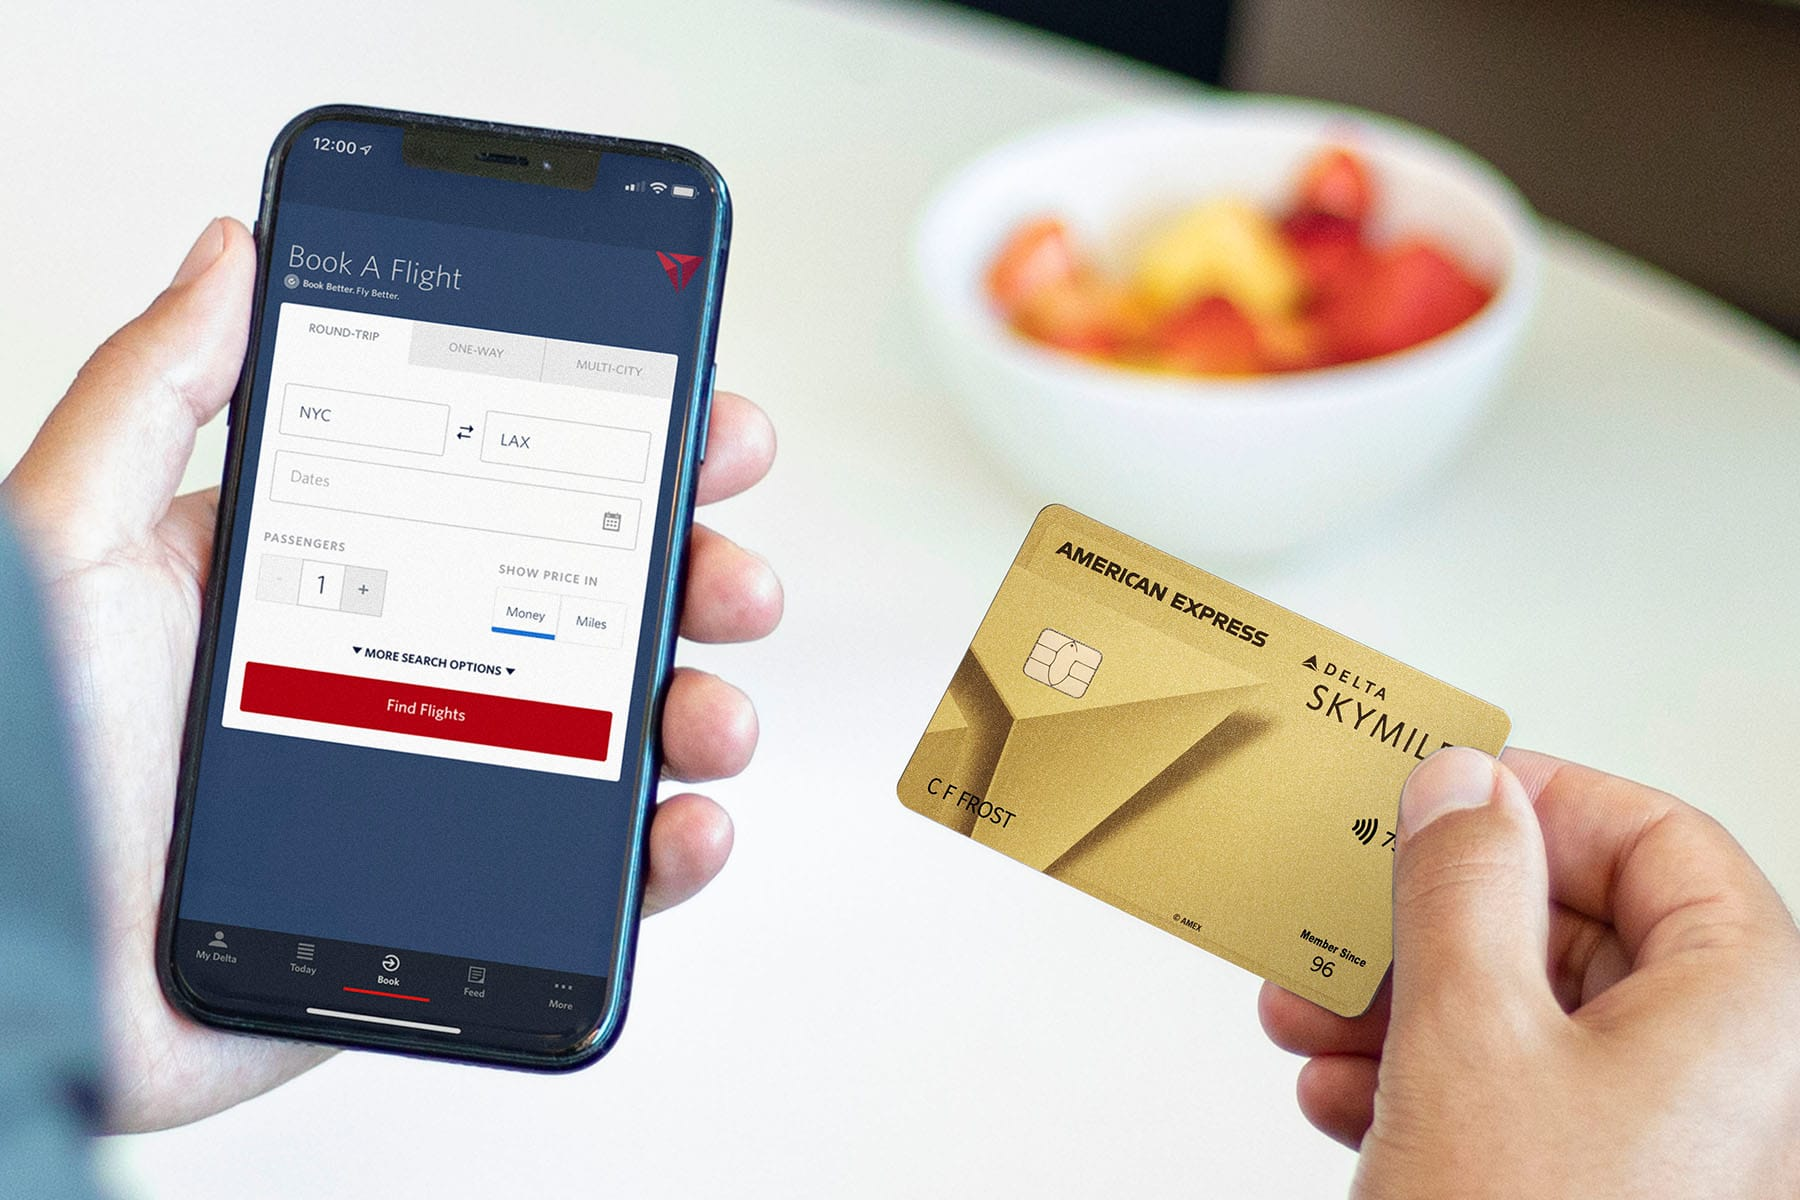 Delta Amex credit cards relaunch with new benefits and limited-time bonus offers